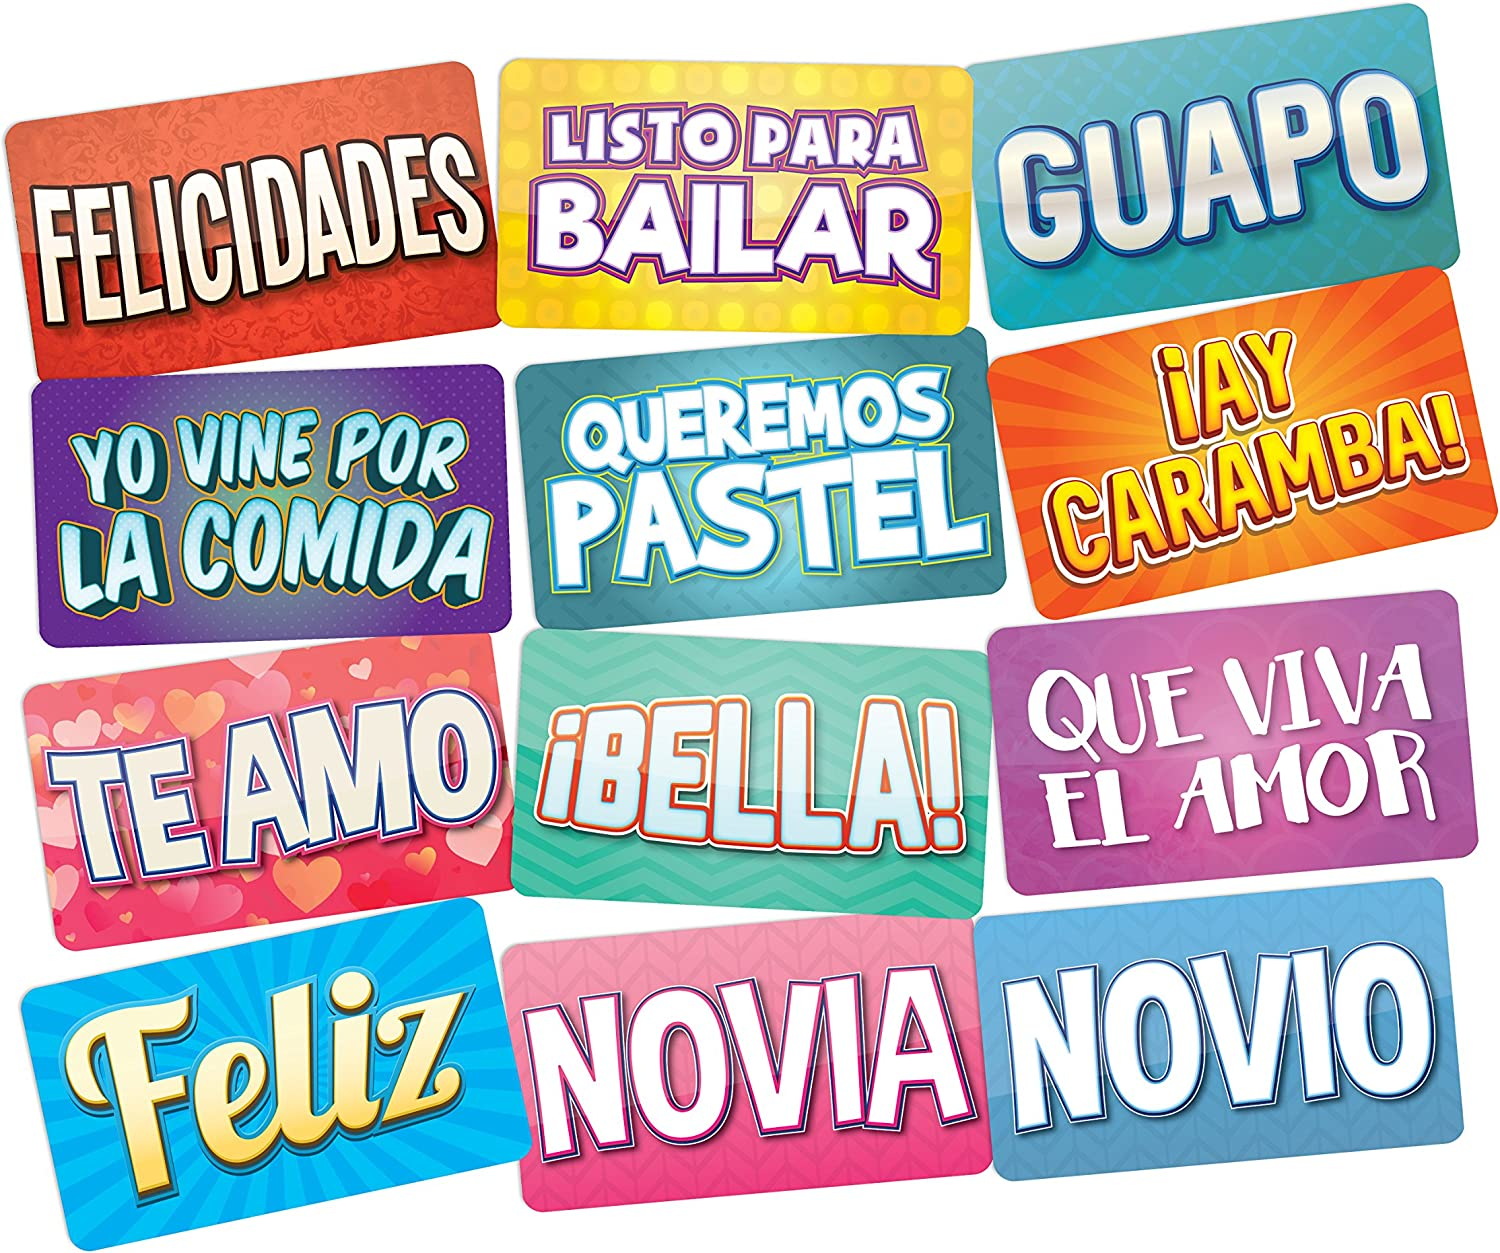 PHOTO BOOTH PROPS IN SPANISH Perfect Photo Booth Prop For Any Event, All Spanish Terms Can Be Used for Quinceaneras Weddings Birthday Parties and ...